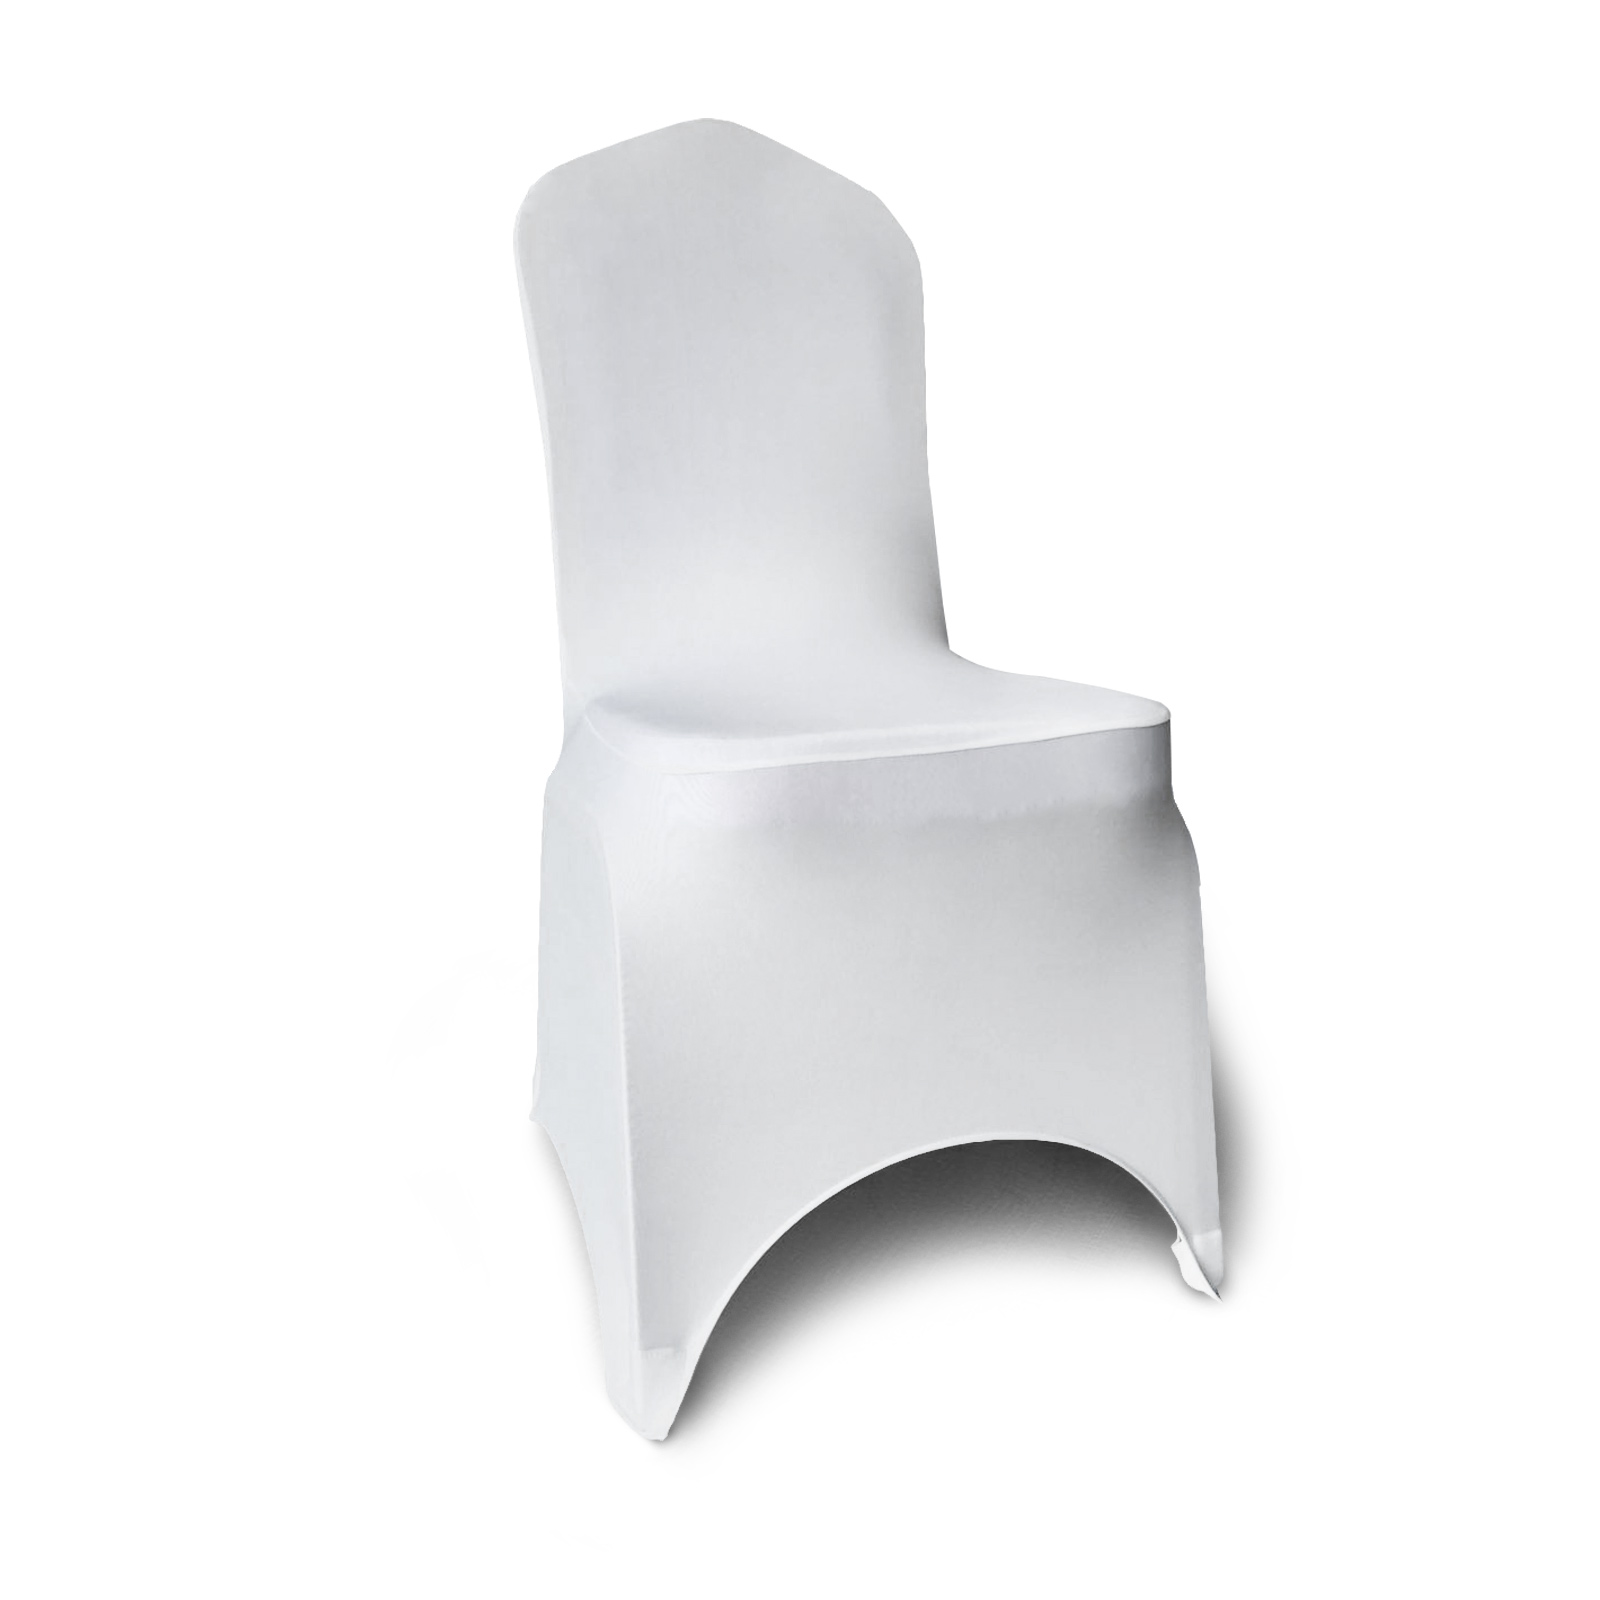 100pcs Stretch Spandex White Folding Chair Covers Tidy